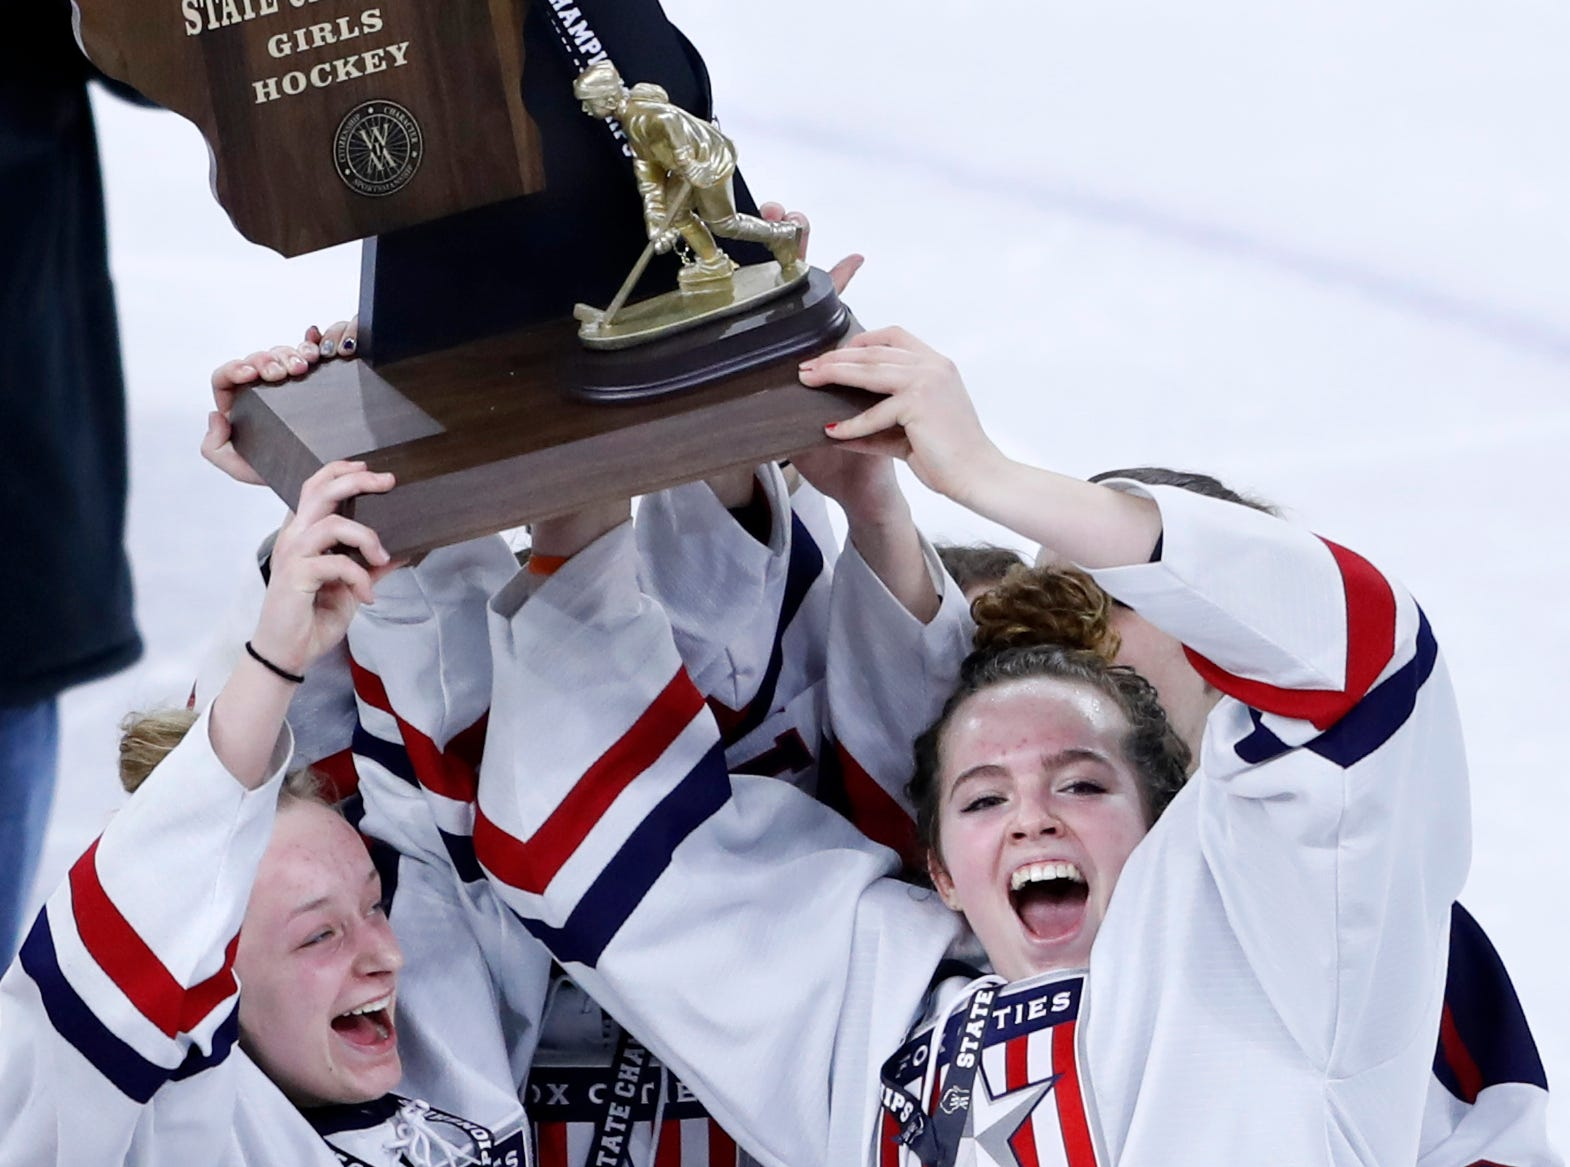 Fox Cities StarsÕ Lauryn Hull and Tori Nelson hold up the first place trophy with teammates after defeating Hudson in double overtime during the WIAA State Hockey Tournament championship match Saturday, March 2, 2019, at Veterans Memorial Coliseum in Madison, Wis.